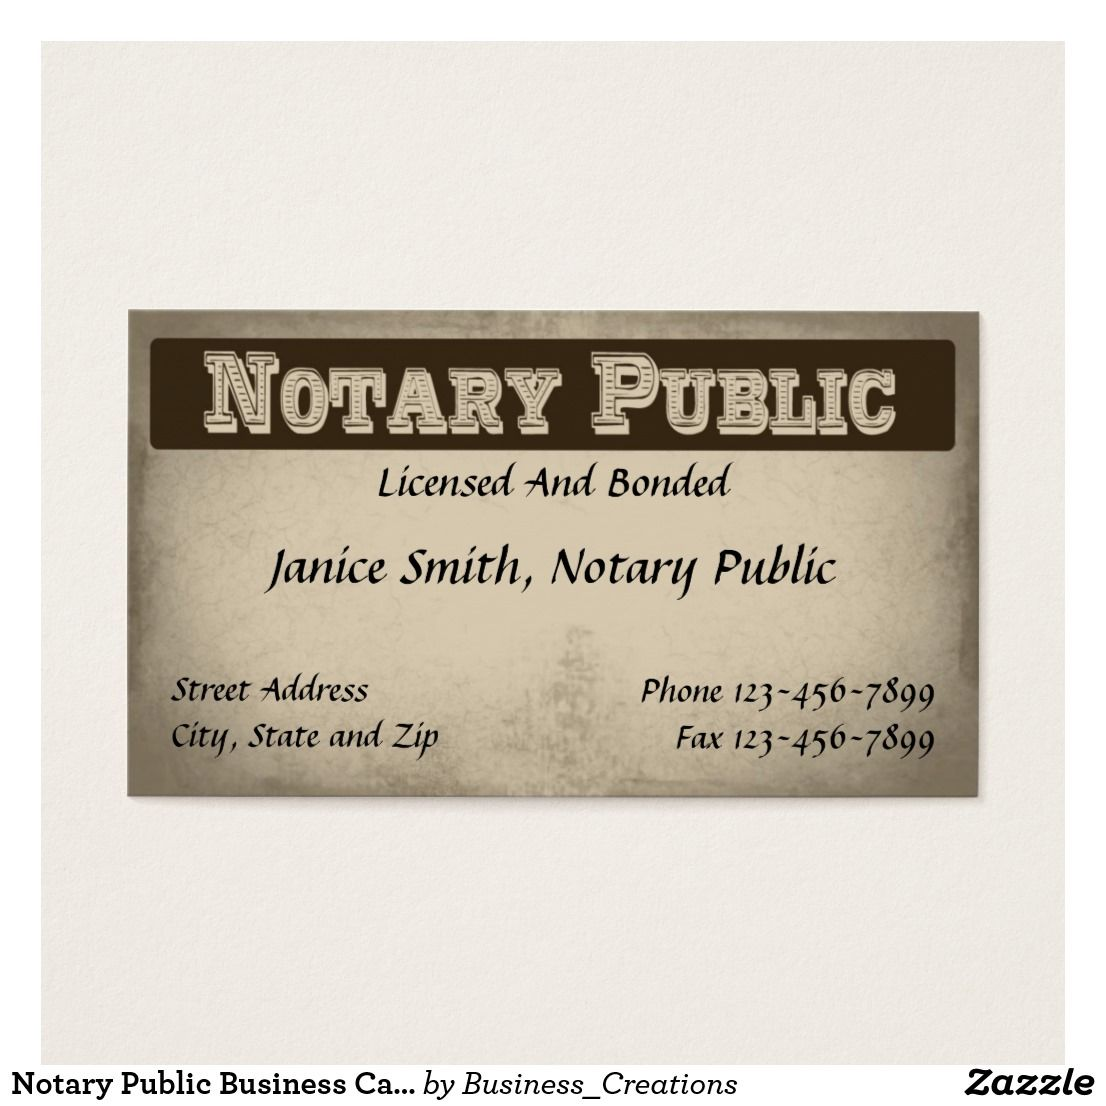 Notary Public Business Card Zazzle Com In 2021 Notary Public Business Notary Public Notary